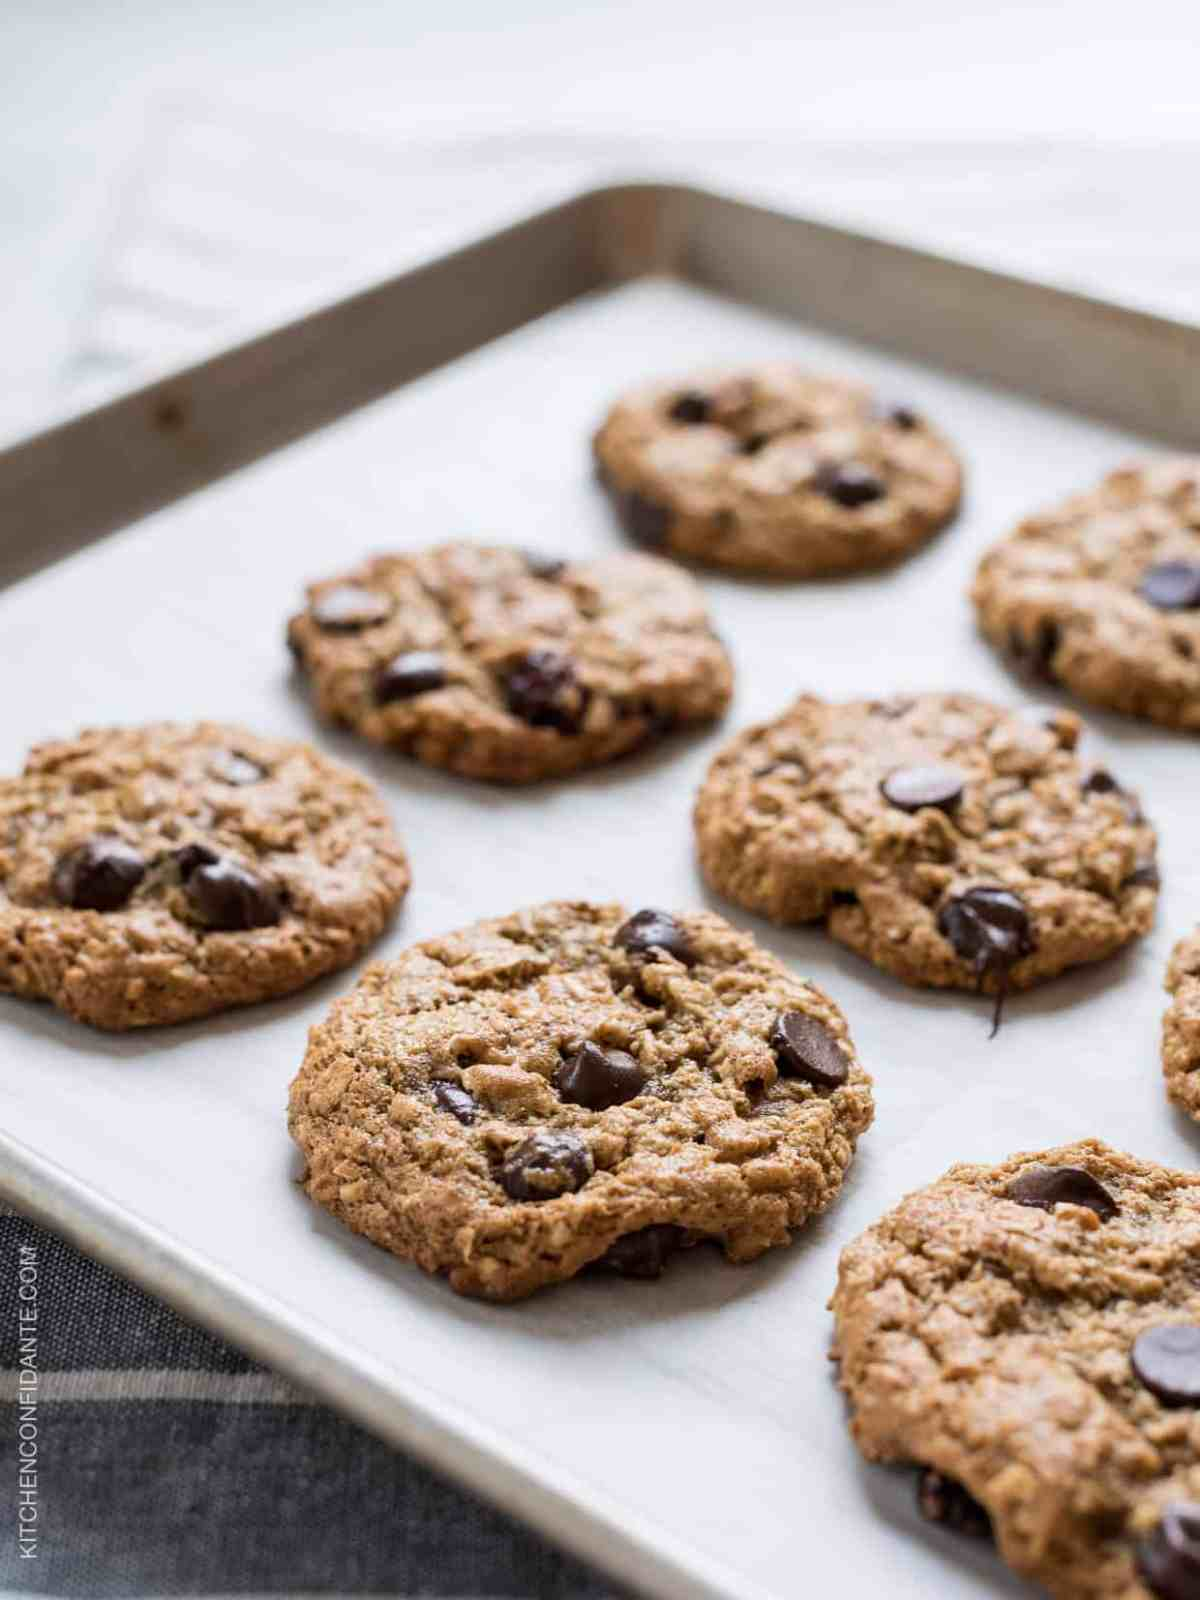 Almond Butter Oatmeal Cookies with chocolate chips on a baking sheet.